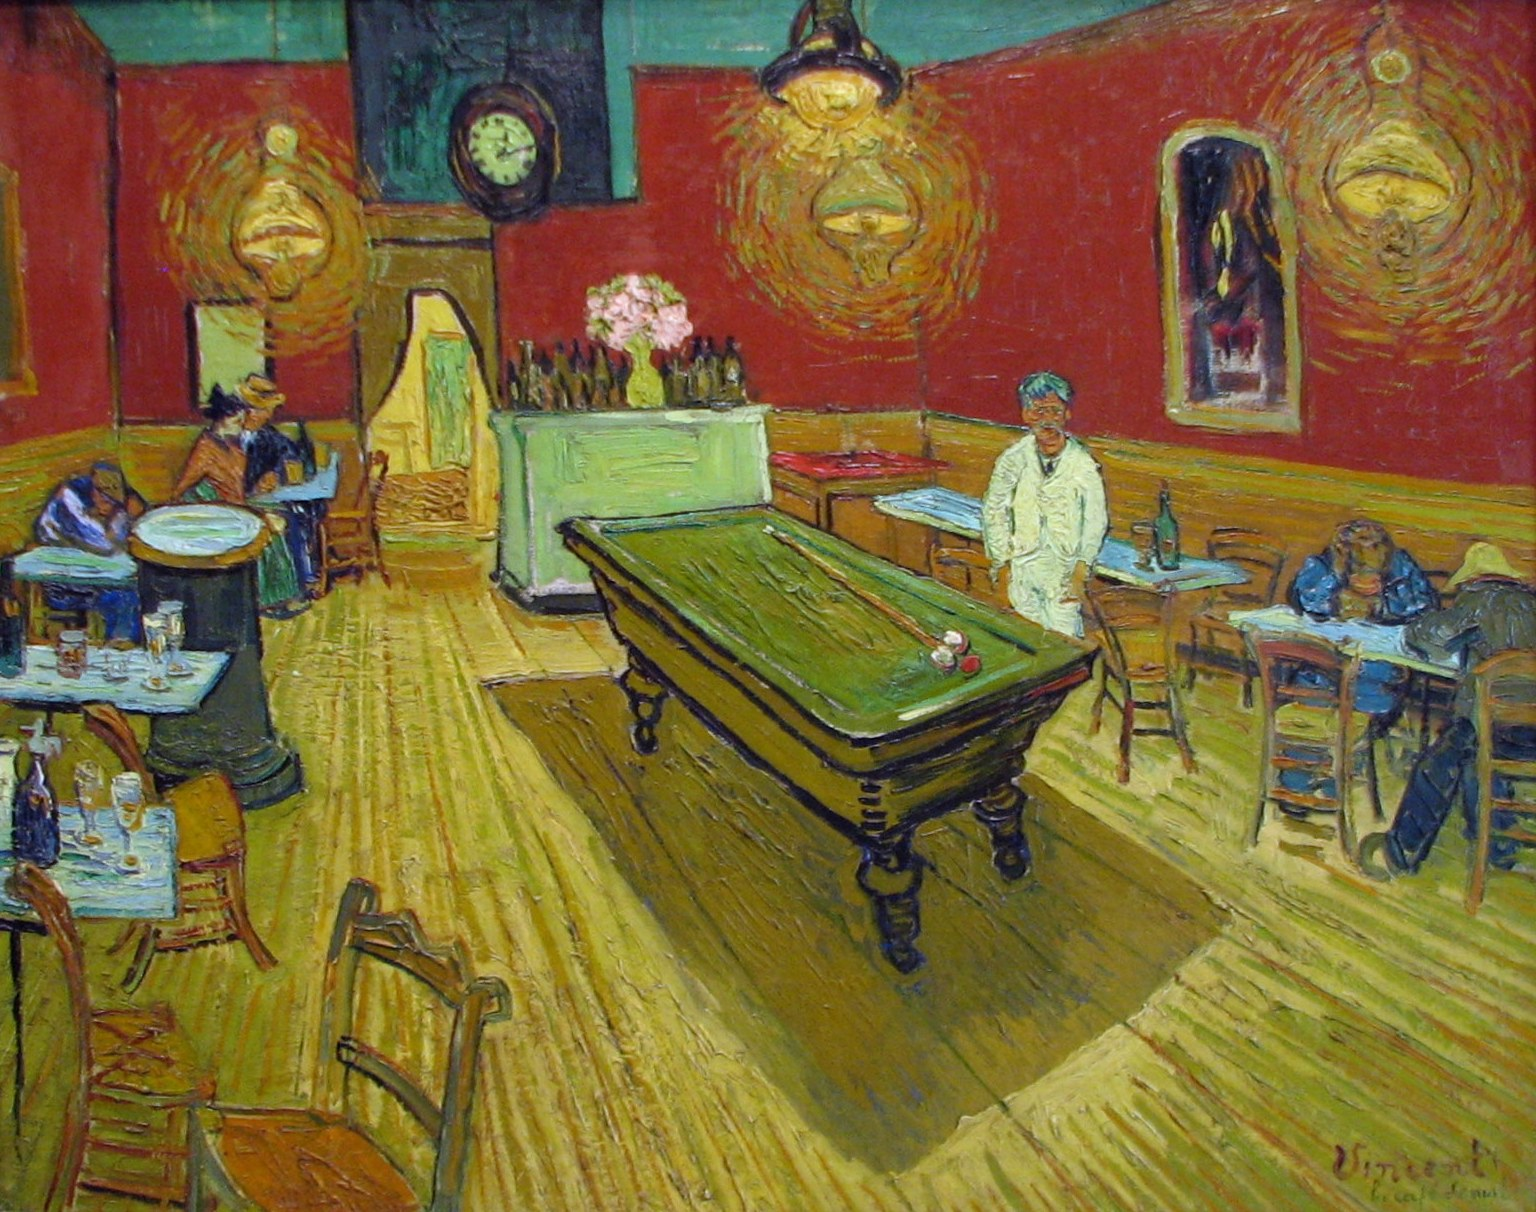 """I have tried to express the terrible passions of humanity by means of red and green. The room is blood red and dark yellow with a green billiard table in the middle; there are four lemon-yellow lamps with a glow of orange and green. Everywhere there is a clash and contrast of the most alien reds and greens, in the figures of little sleeping hooligans, in the empty dreary room, in violet and blue. The blood-red and the yellow-green of the billiard table, for instance, contrast with the soft tender Louis XV green of the counter, on which there is a rose nosegay. The white clothes of the landlord, watchful in a corner of that furnace, turn lemon-yellow, or pale luminous green.""  Vincent Van Gogh in a letter to his brother Theo, September 8, 1888."